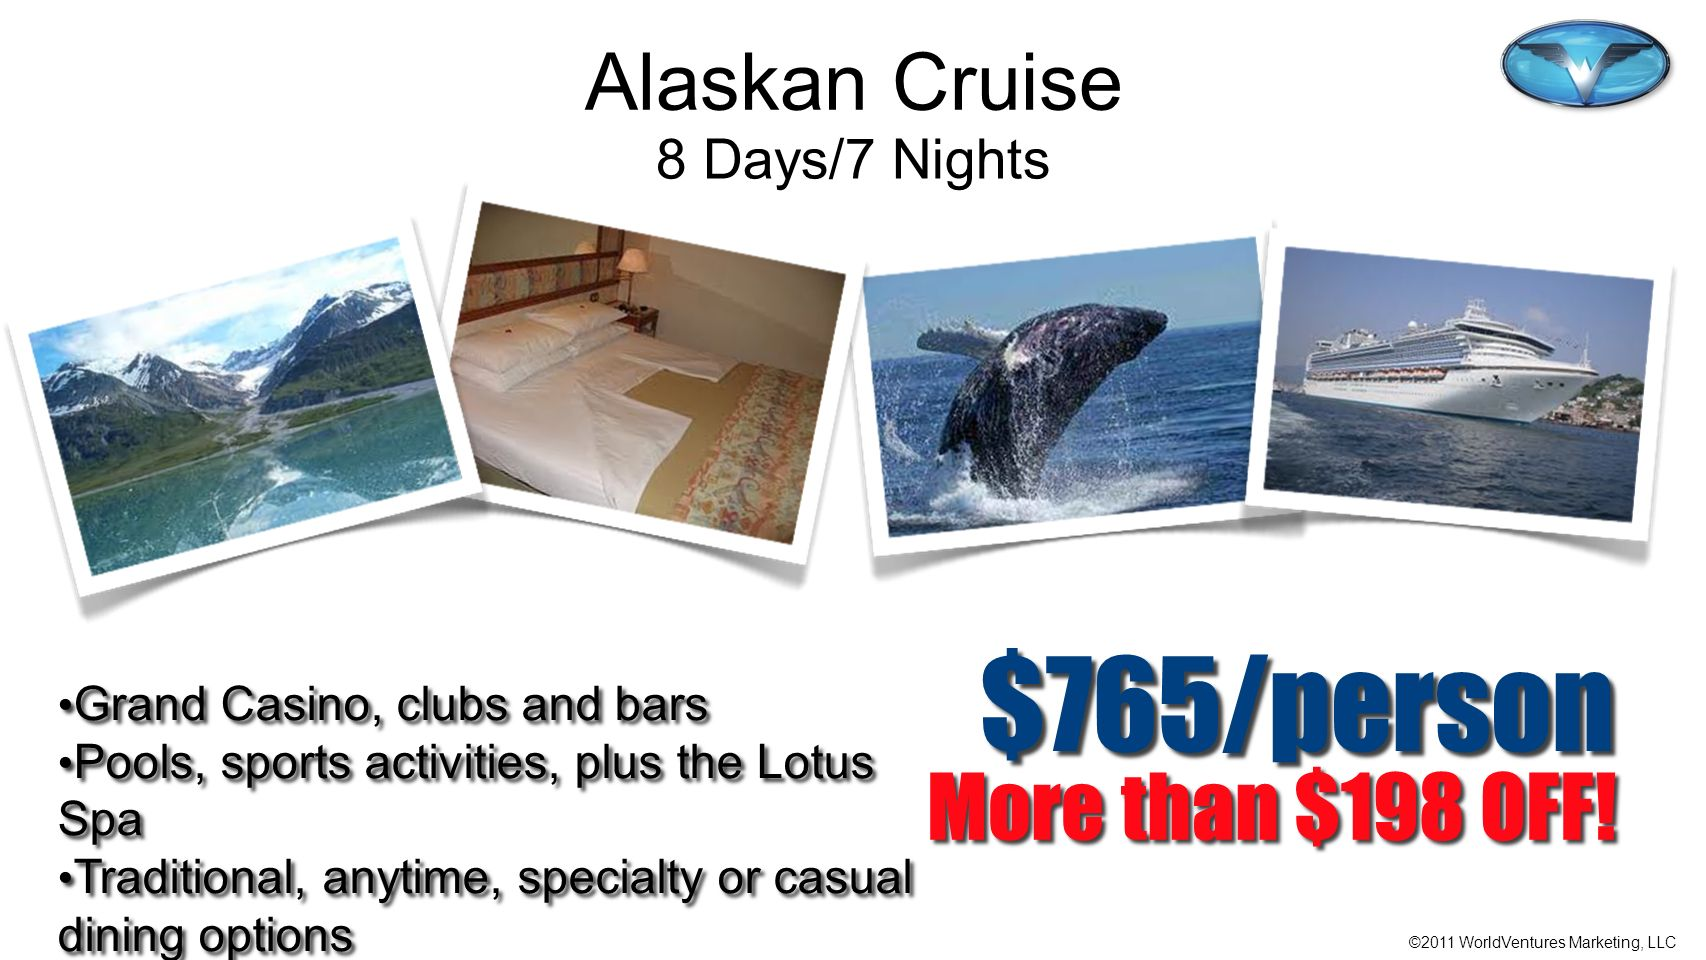 $765/person More than $198 OFF! Alaskan Cruise 8 Days/7 Nights